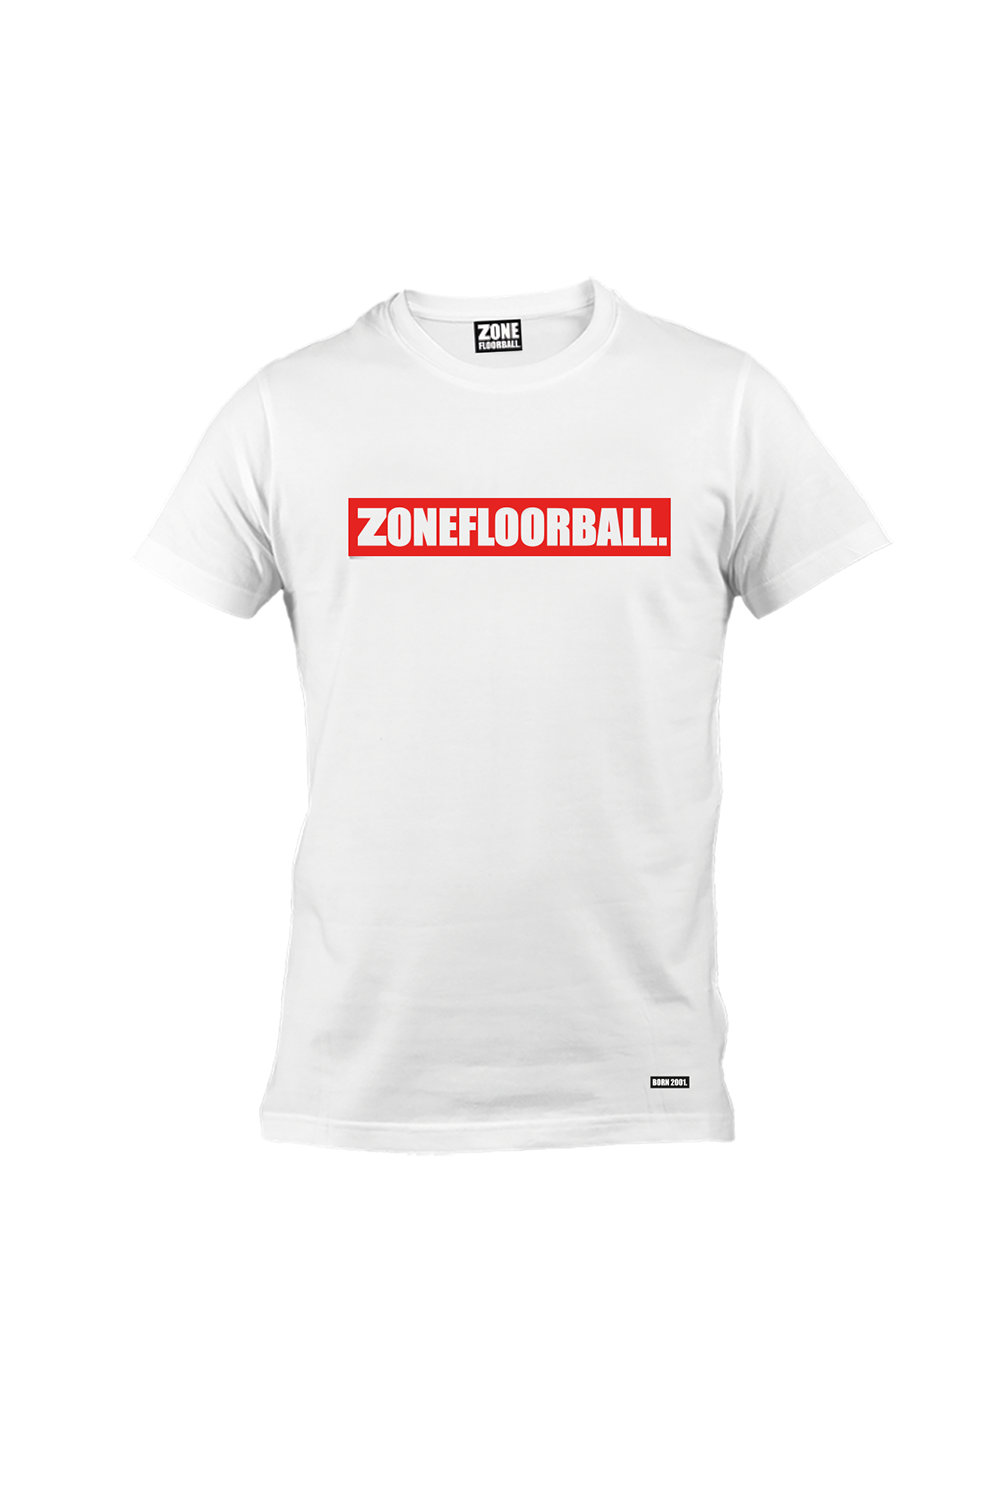 T-SHIRT PERSONAL.